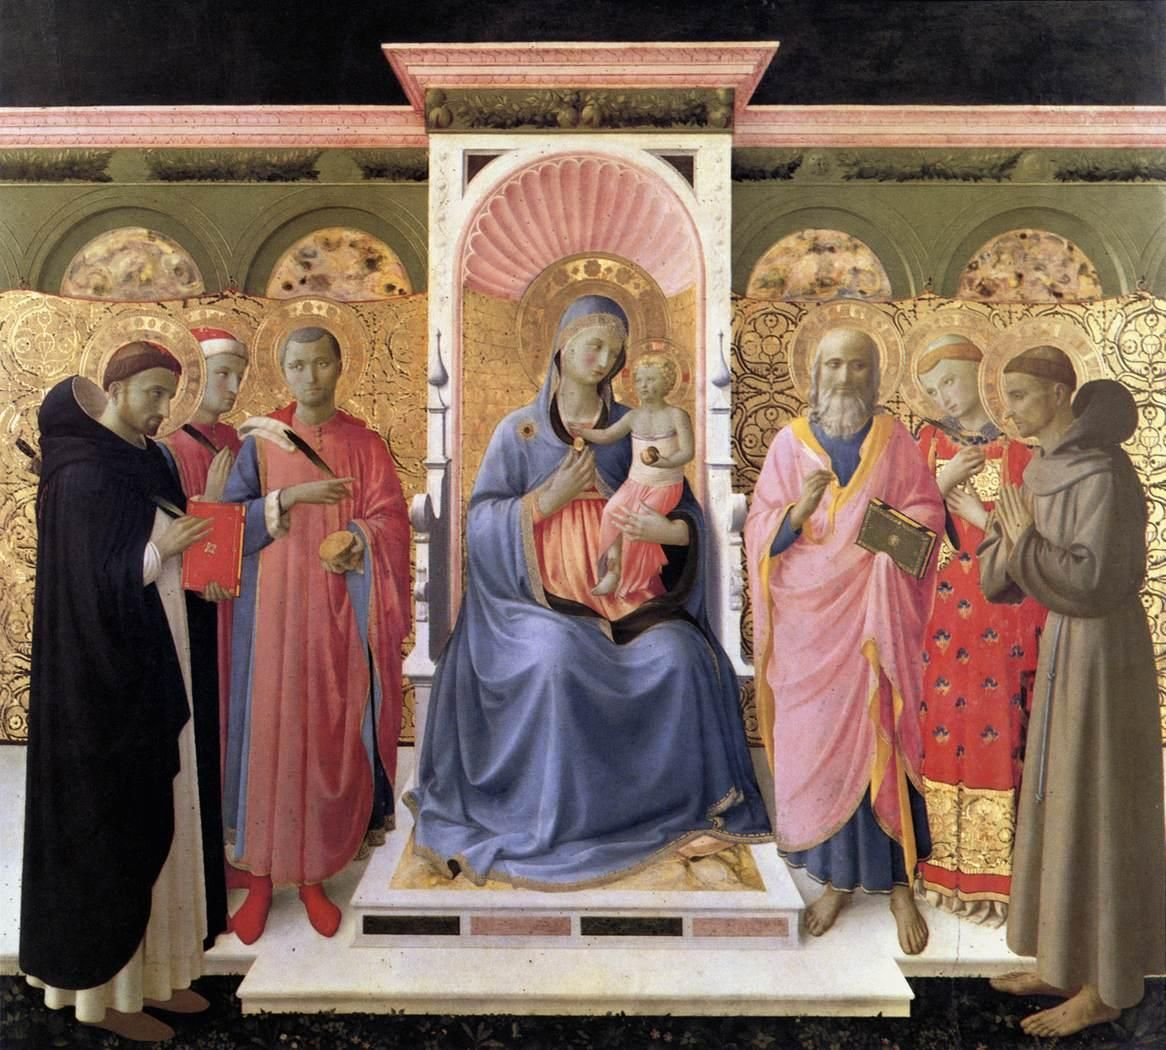 Annalena Altarpiece. Angelico. 1435. Tempera and gold on panel. 180 x 202 cm. Museo di San Marco. Florence.